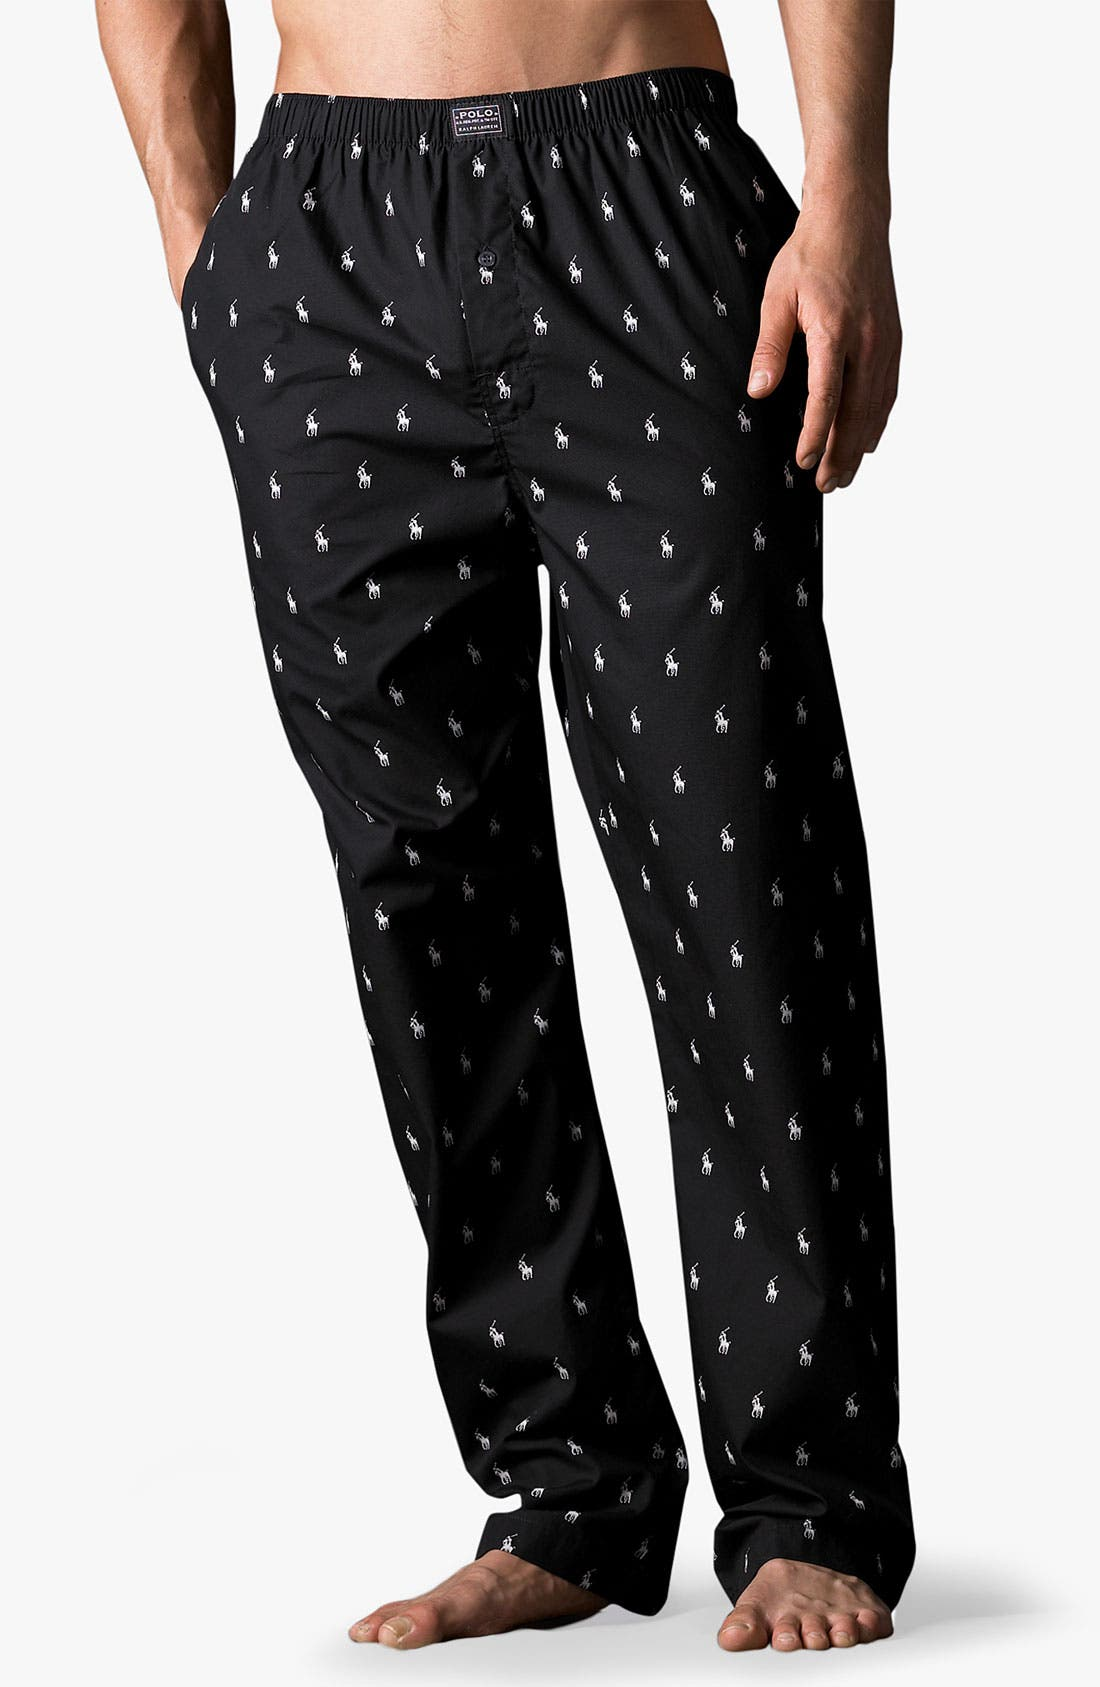 Alternate Image 1 Selected - Polo Ralph Lauren Print Lounge Pants (Tall)